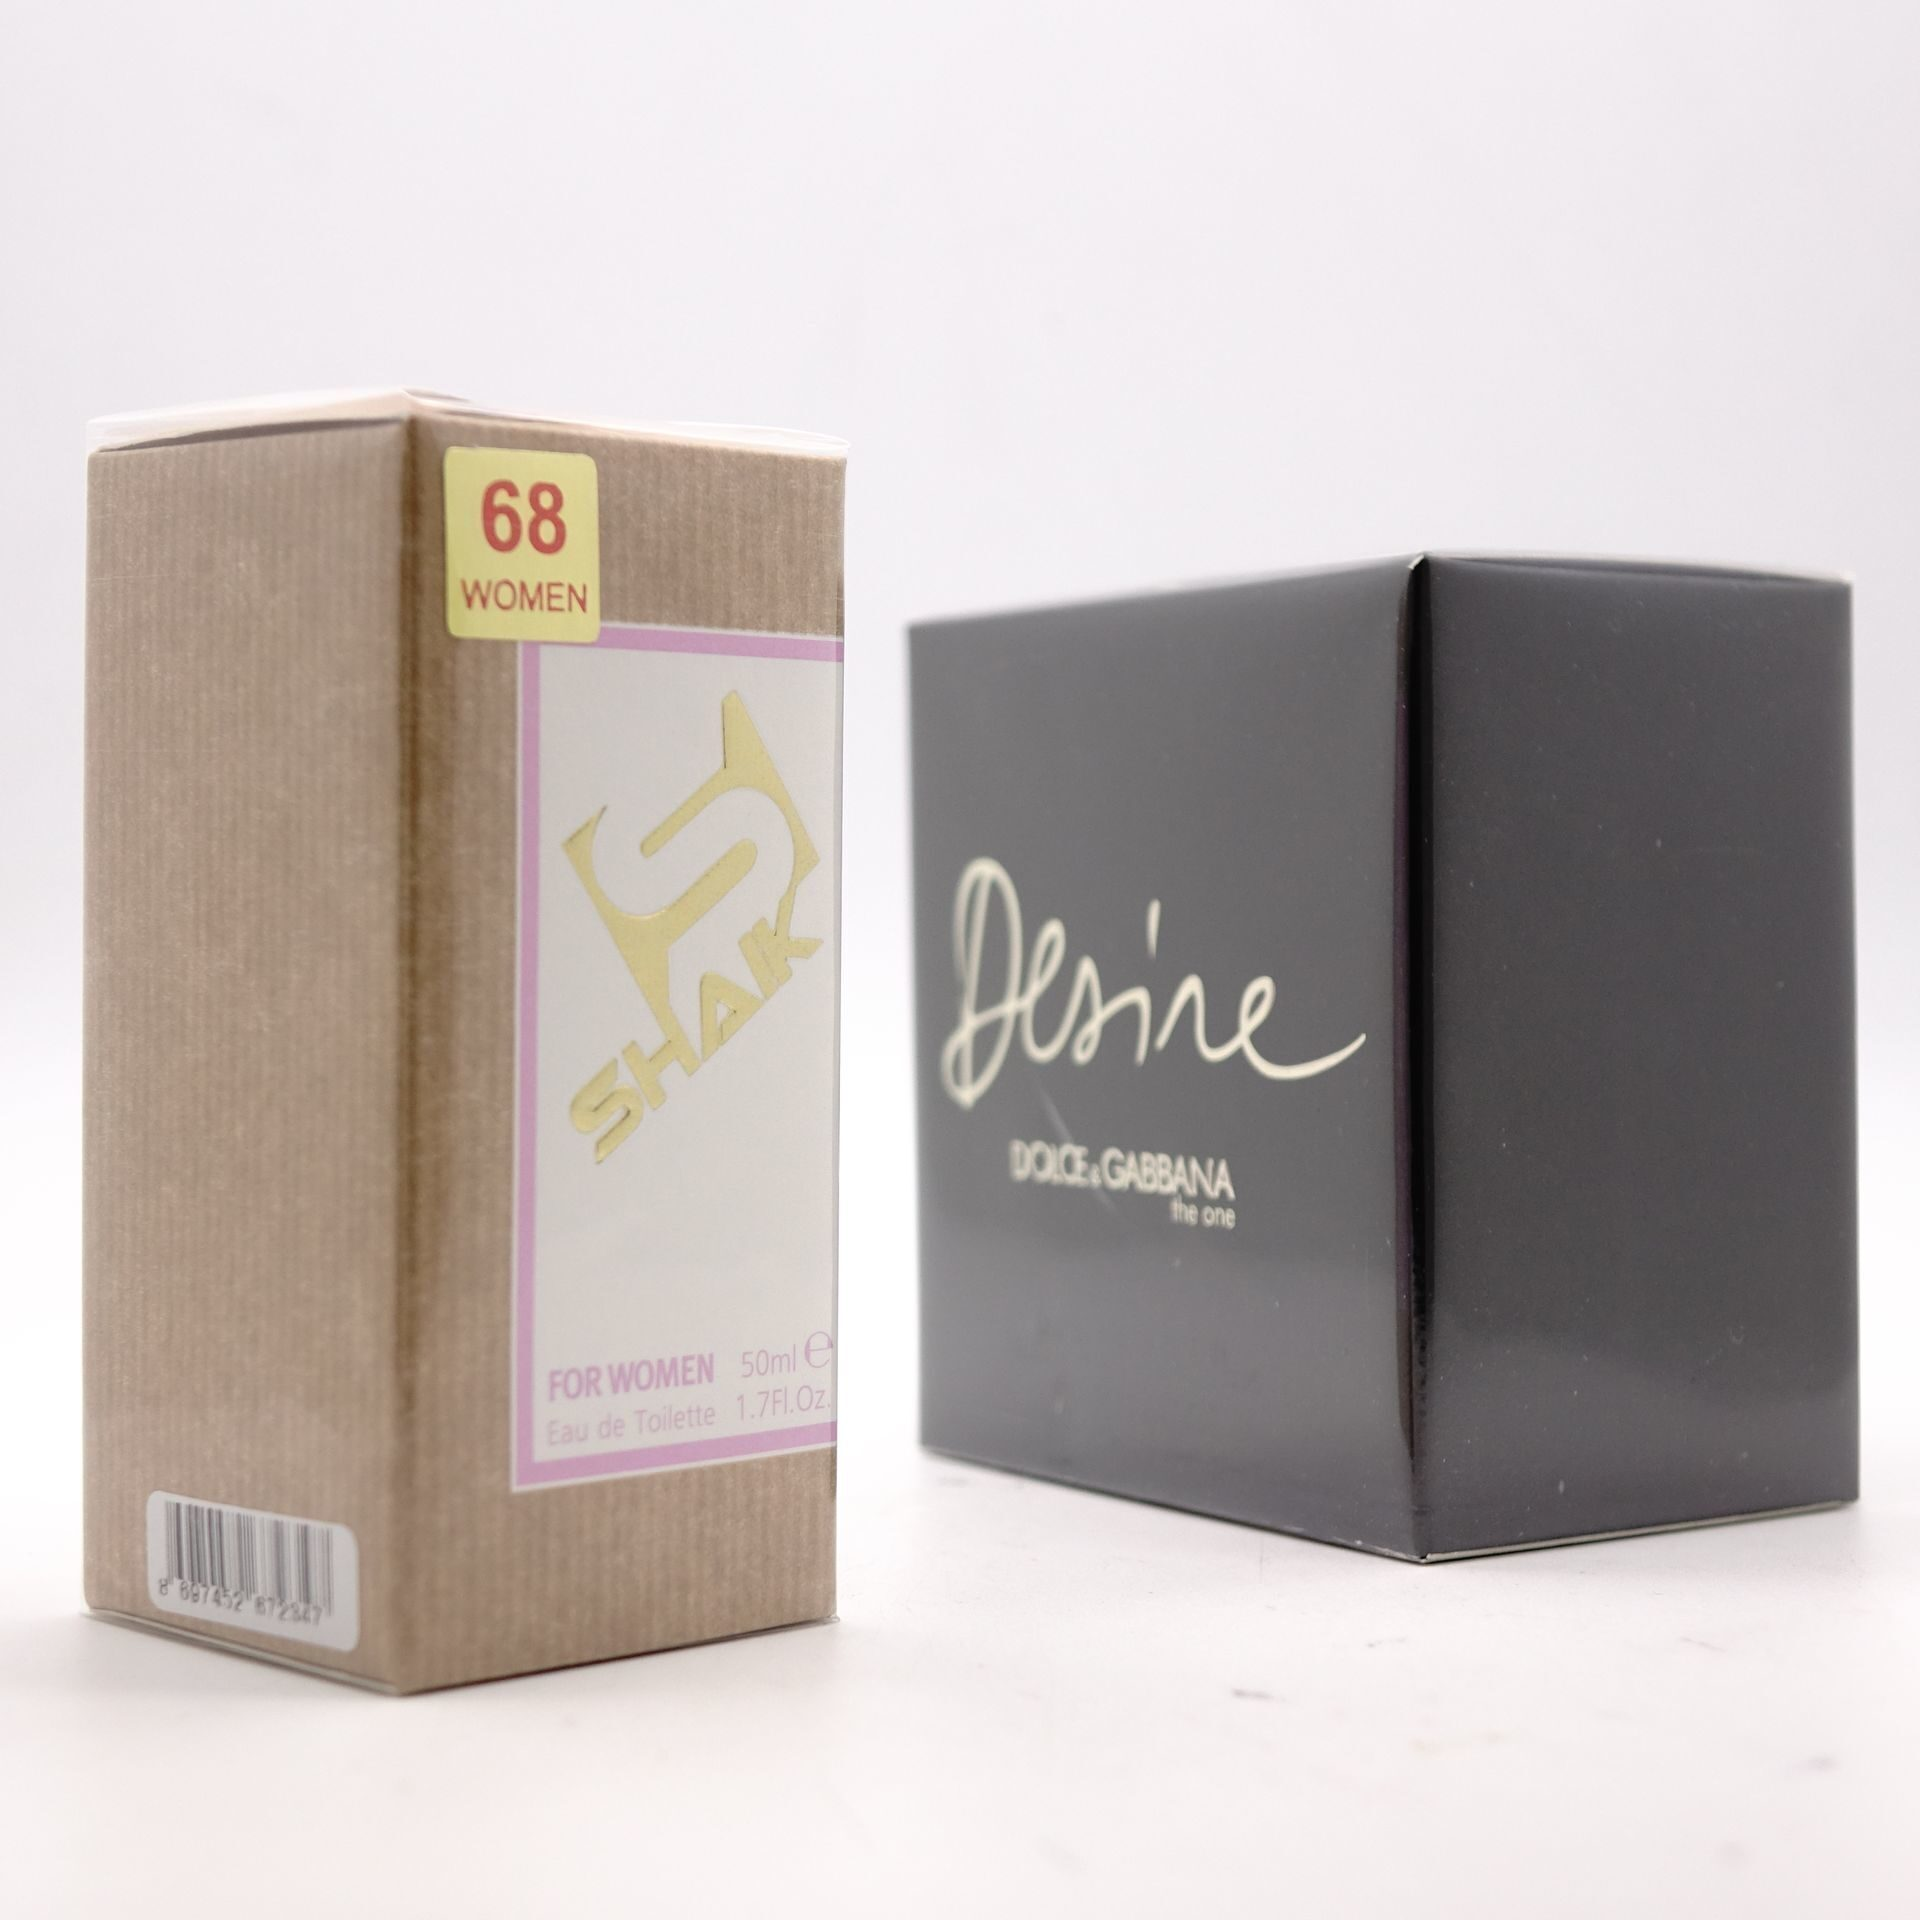 SHAIK W 68 (D&G THE ONE DESIRE FOR WOMEN) 50ml